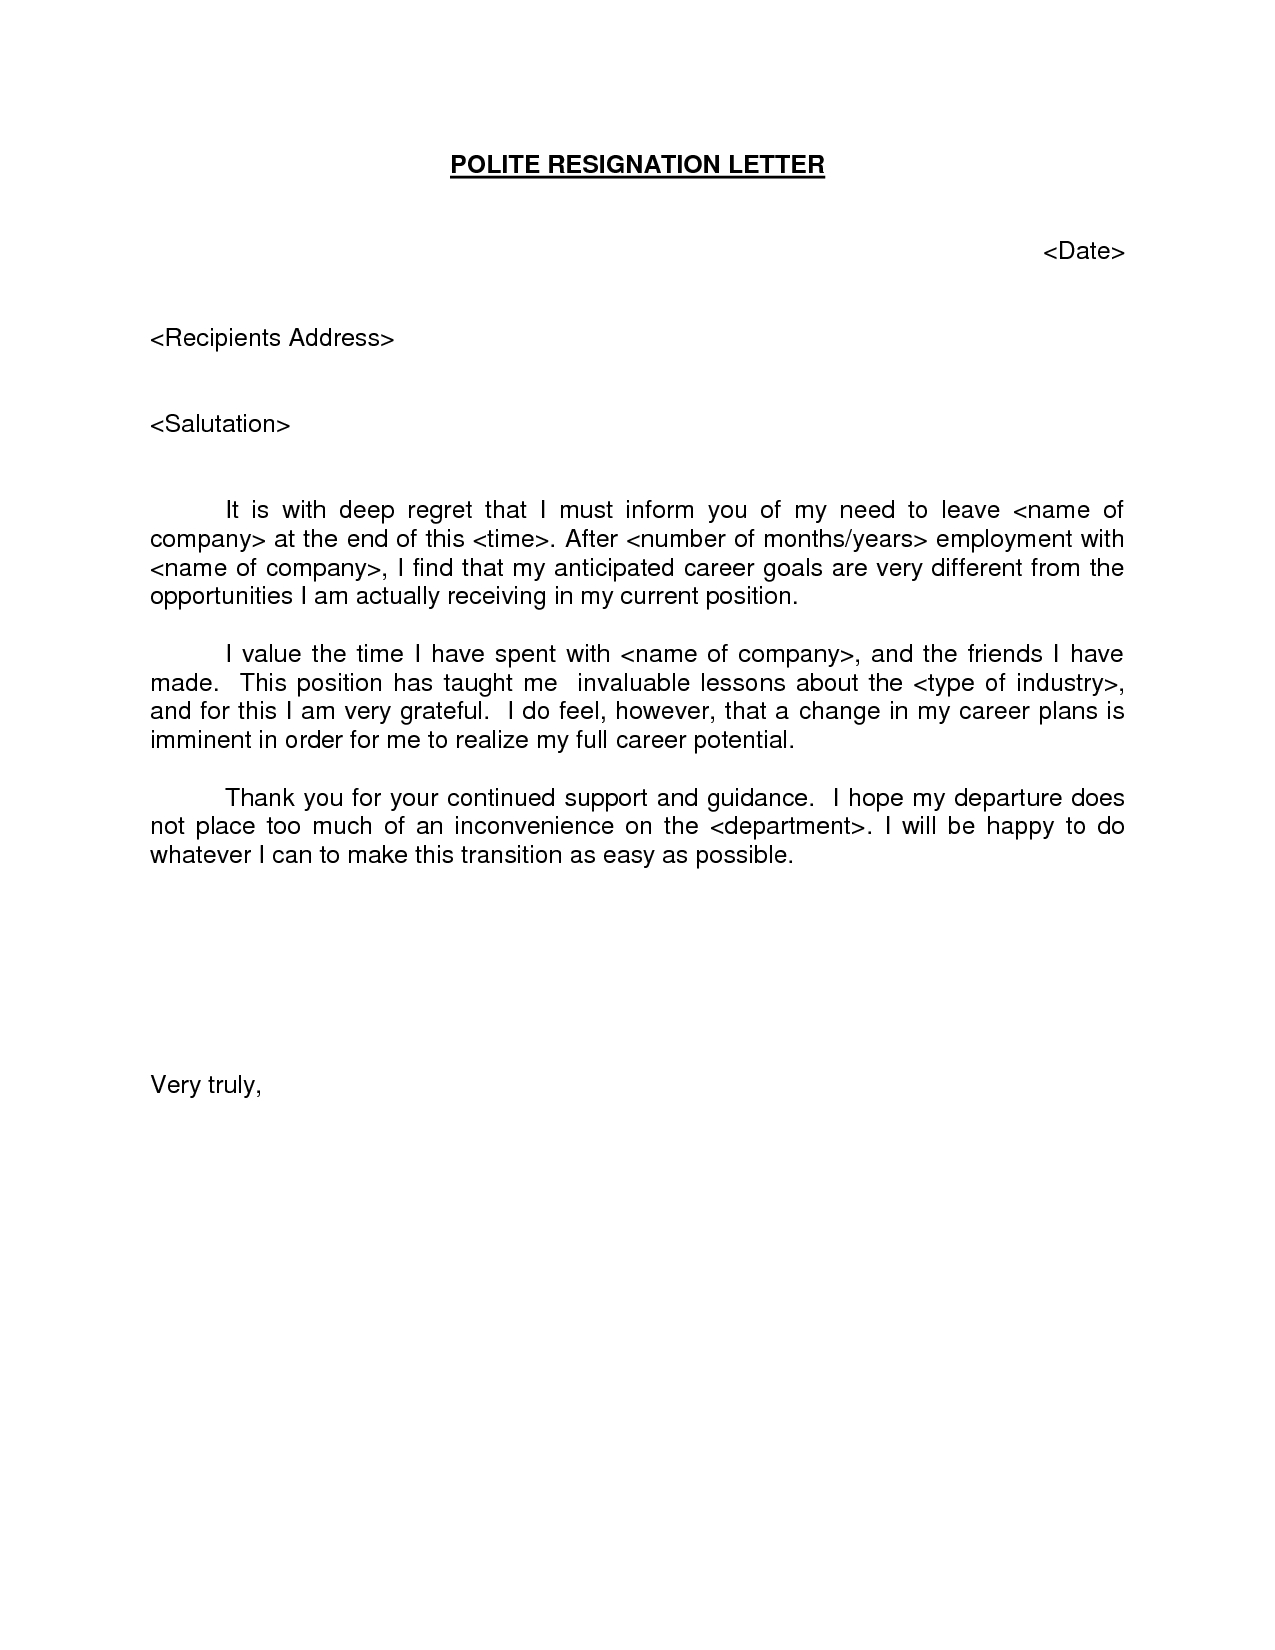 letter of resignation teacher template polite resignation letter bestdealformoneywriting a letter